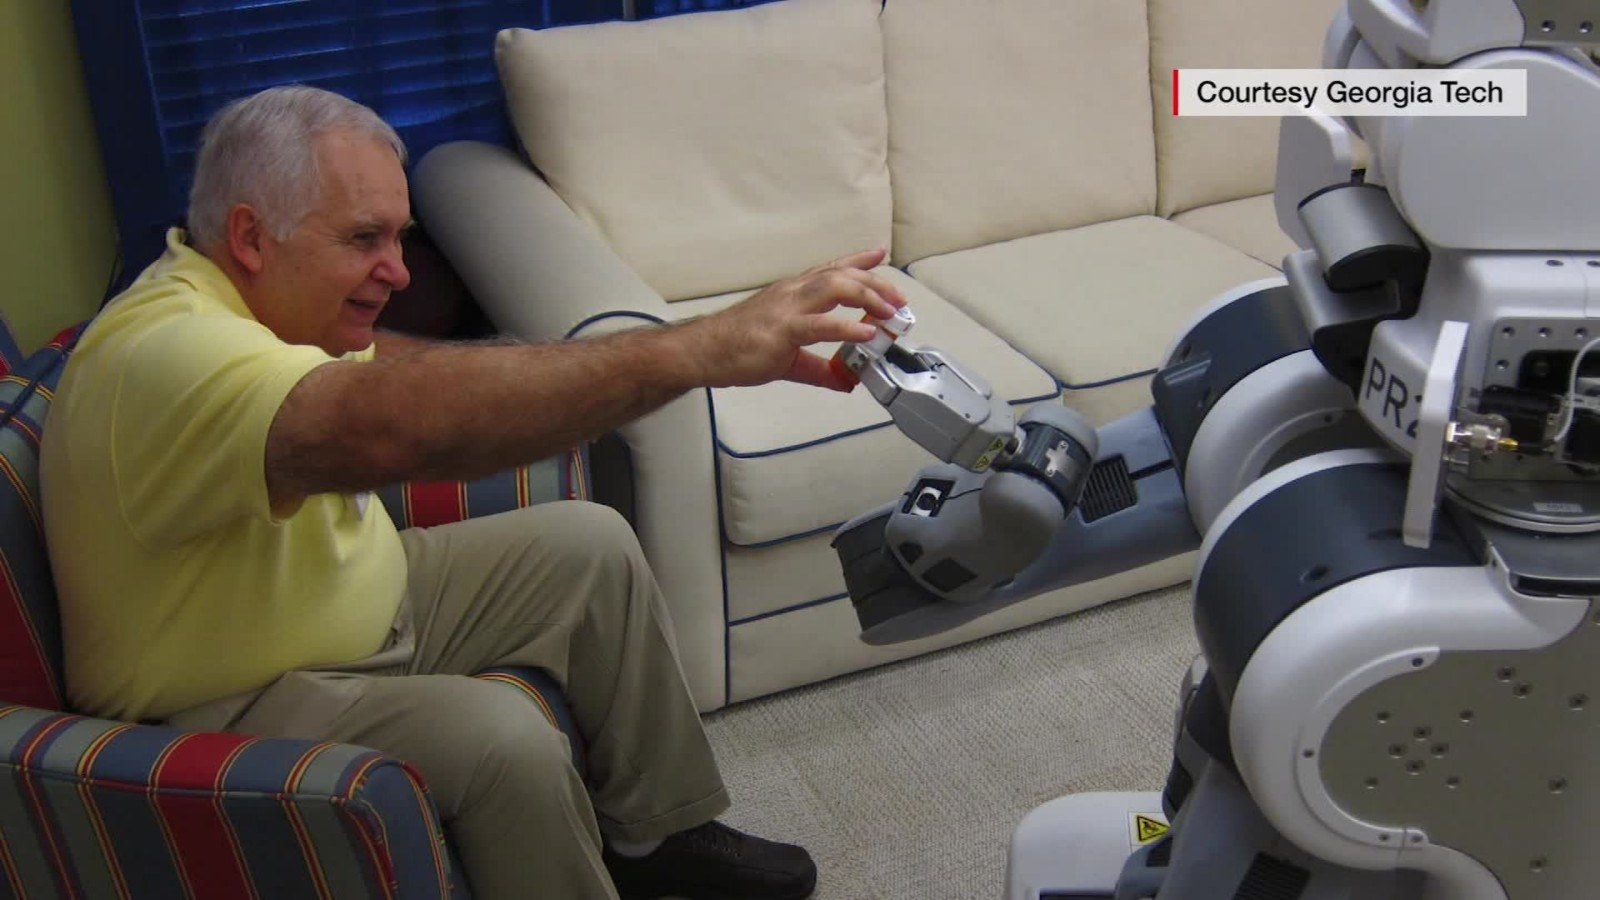 Using technology to help older adults keep their independence - CNN